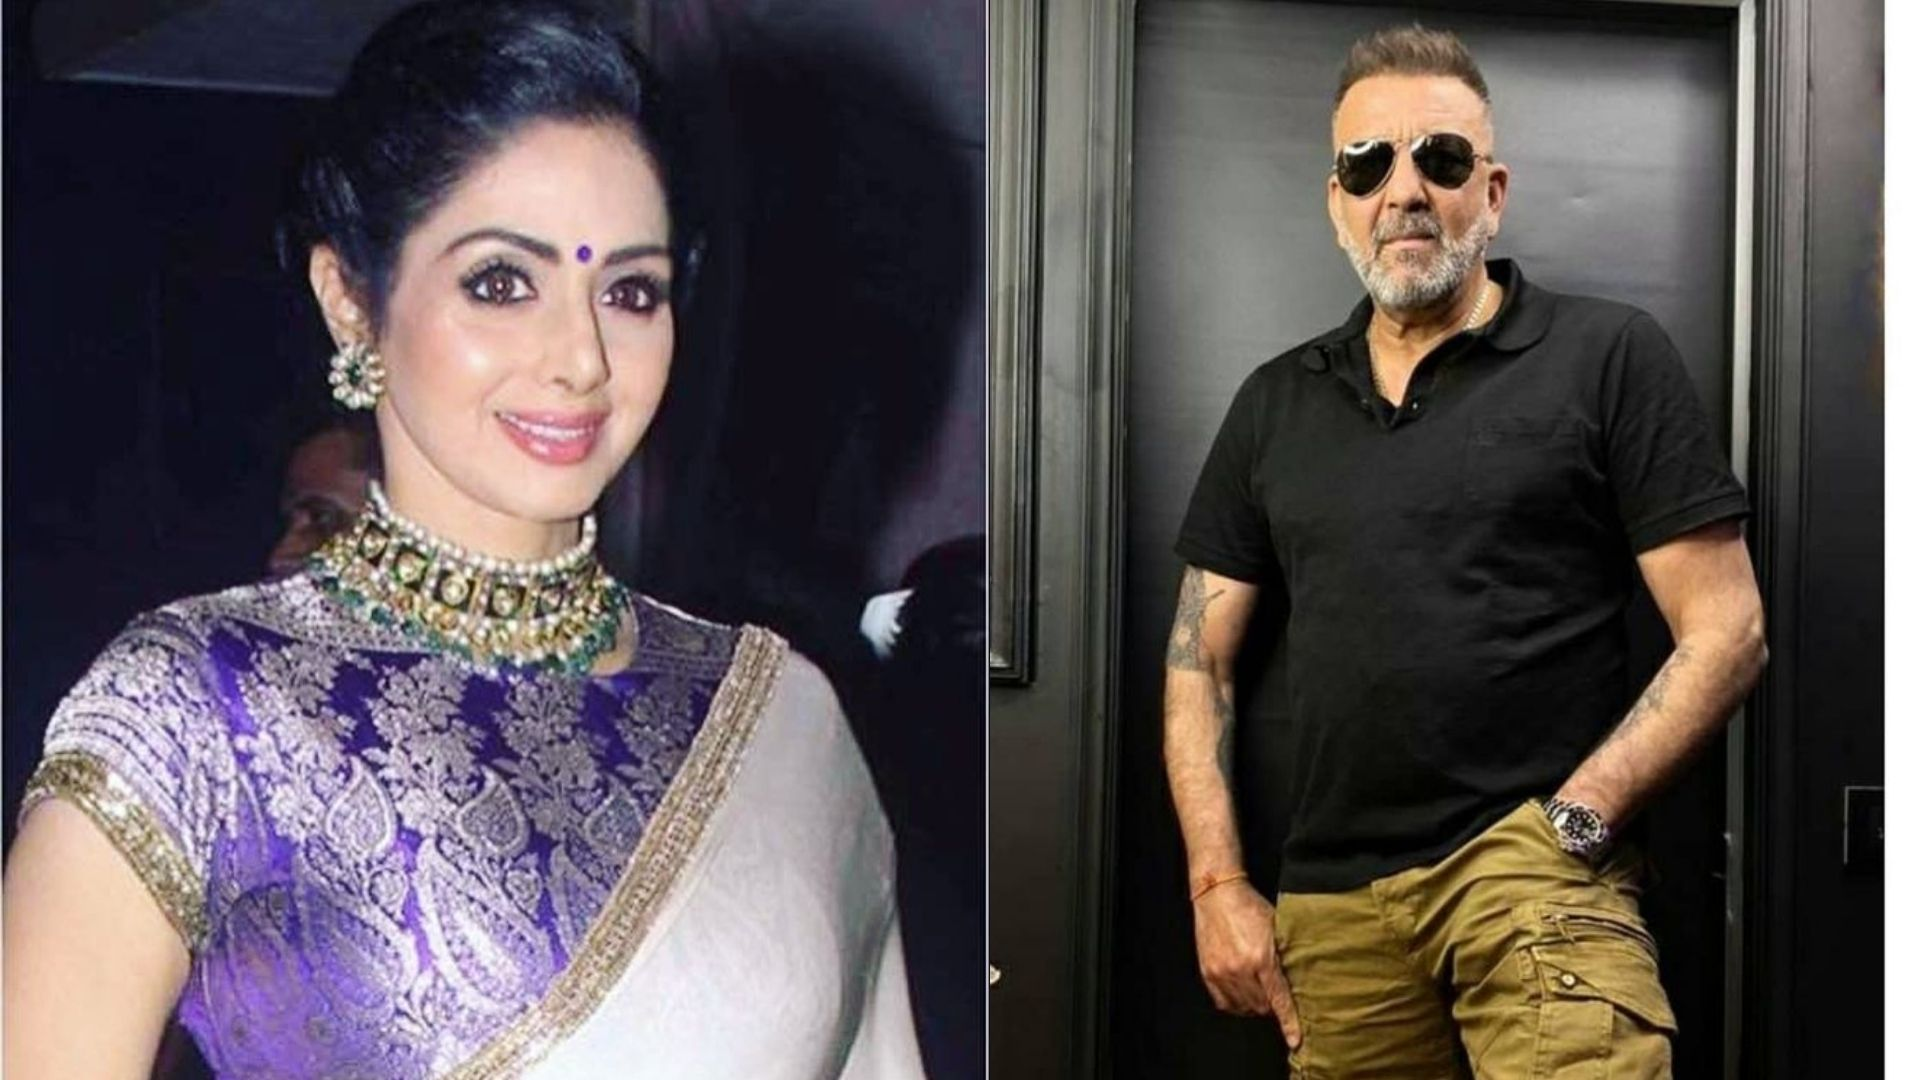 Throwback To Time When Sridevi's Fan Sanjay Dutt Made A Sudden Appearance In Her Room Leaving Her Scared